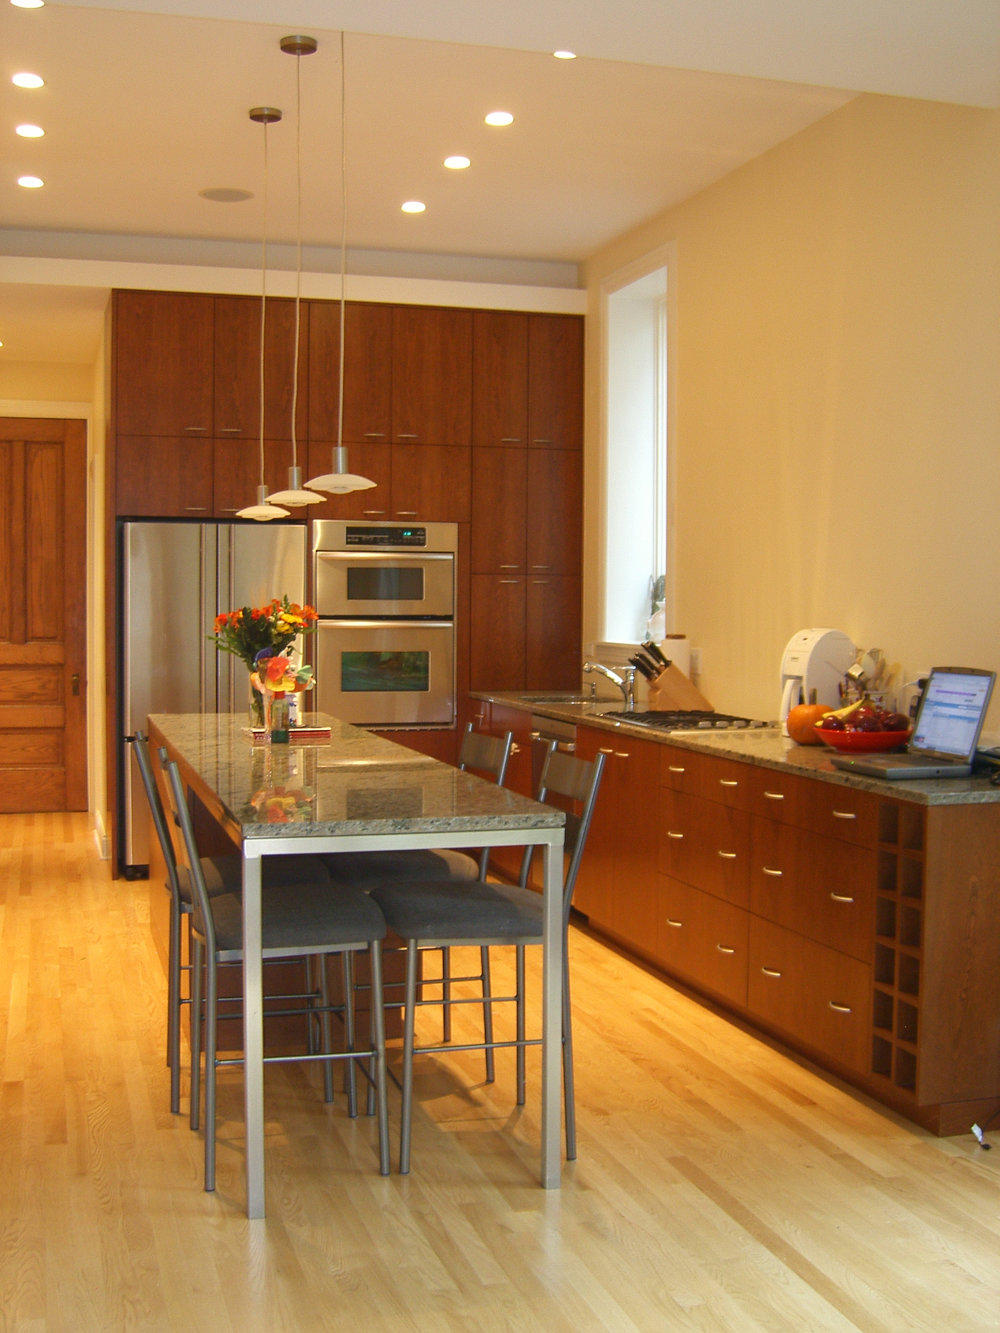 Fullerton_Parkway_Residence_Interior_Kitchen_View_South.jpg